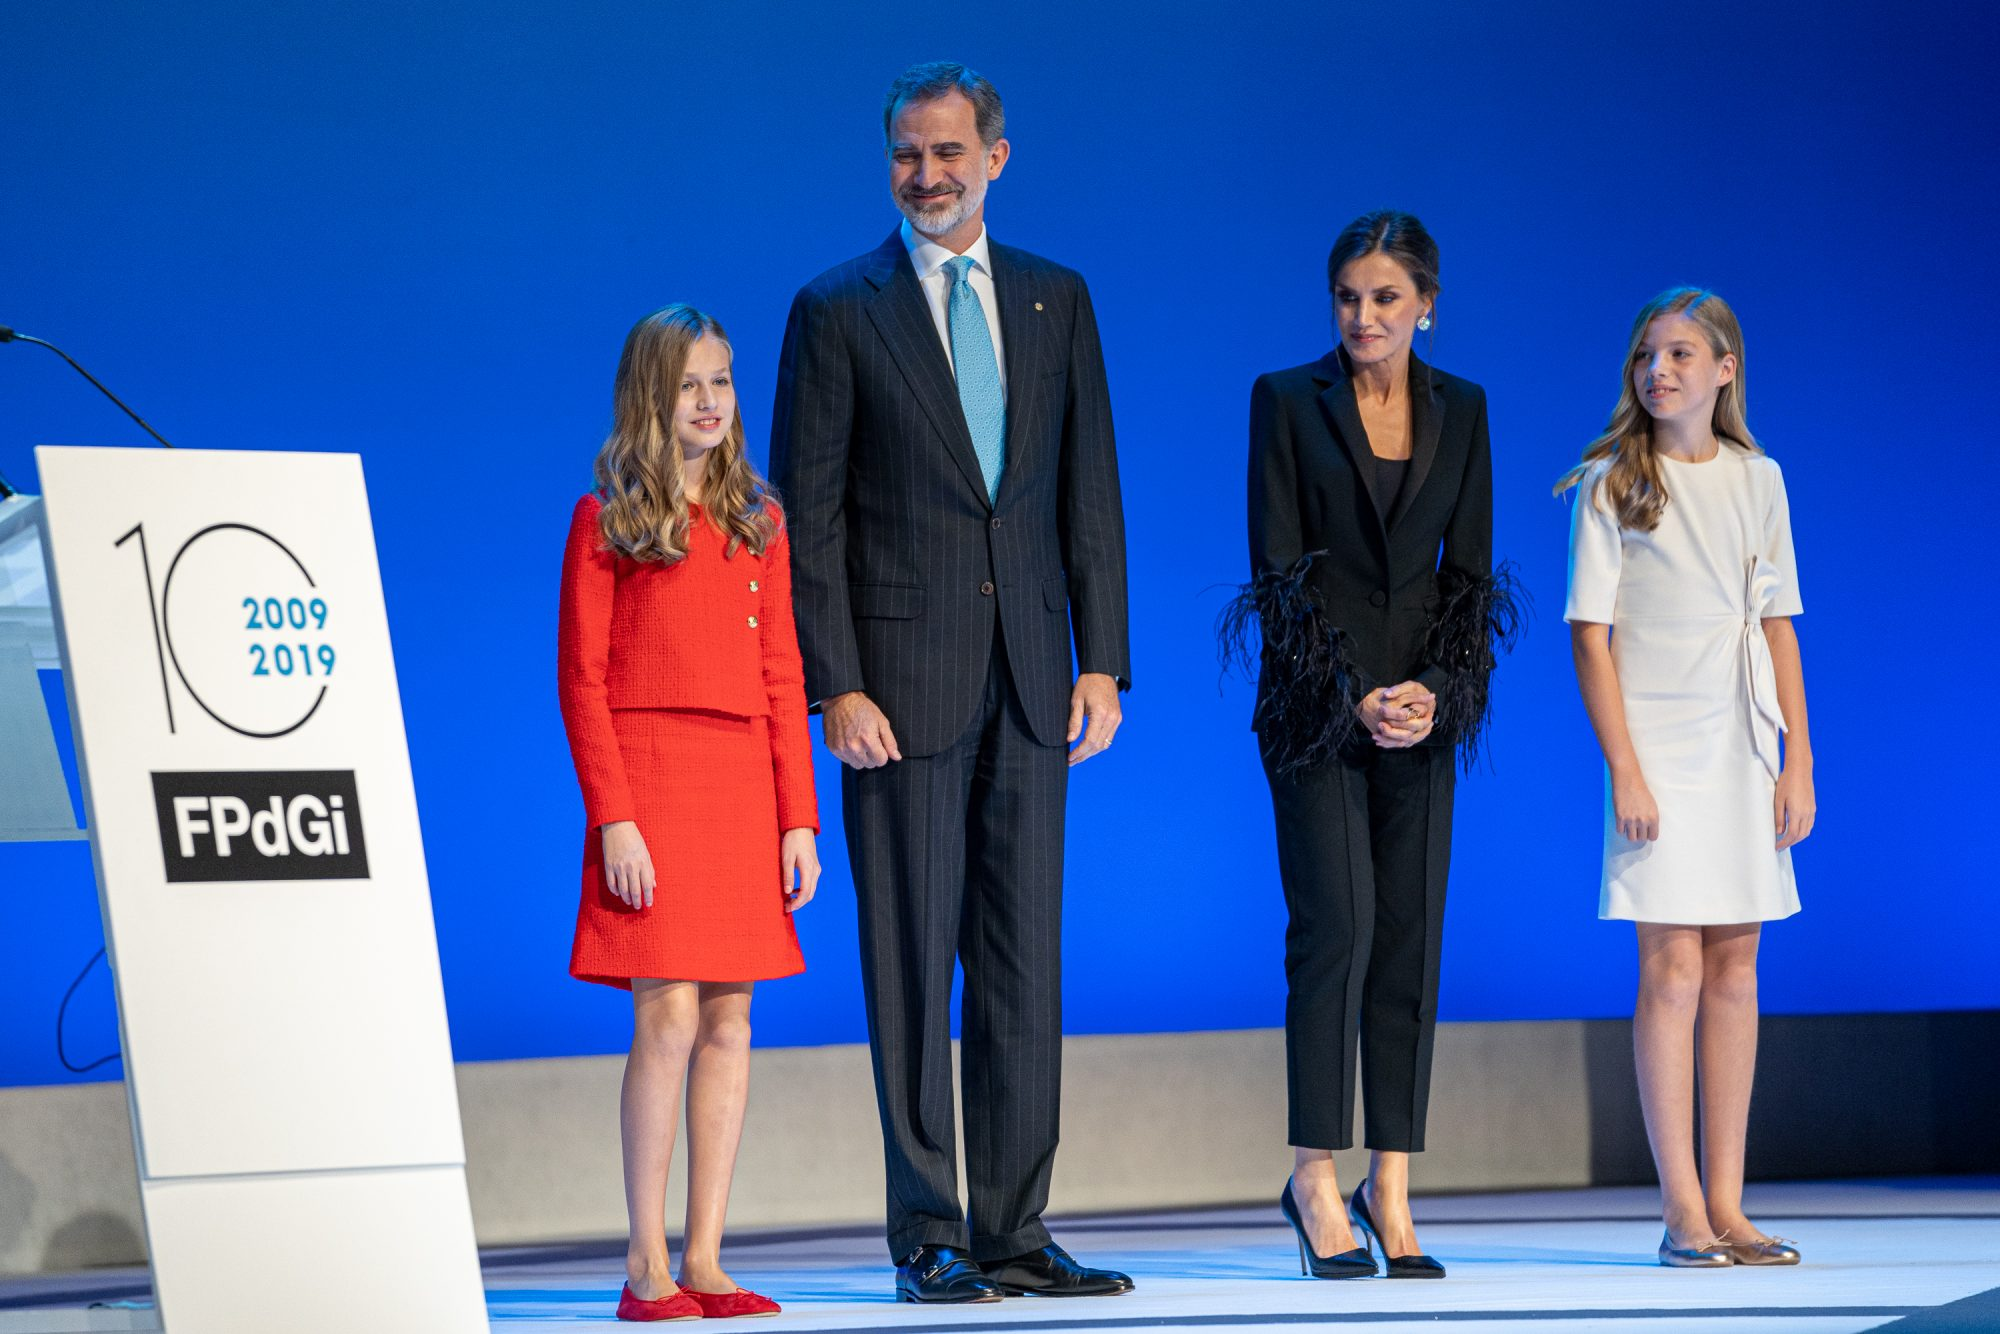 Spanish Royals Attend 'Princesa de Girona' Foundation Awards